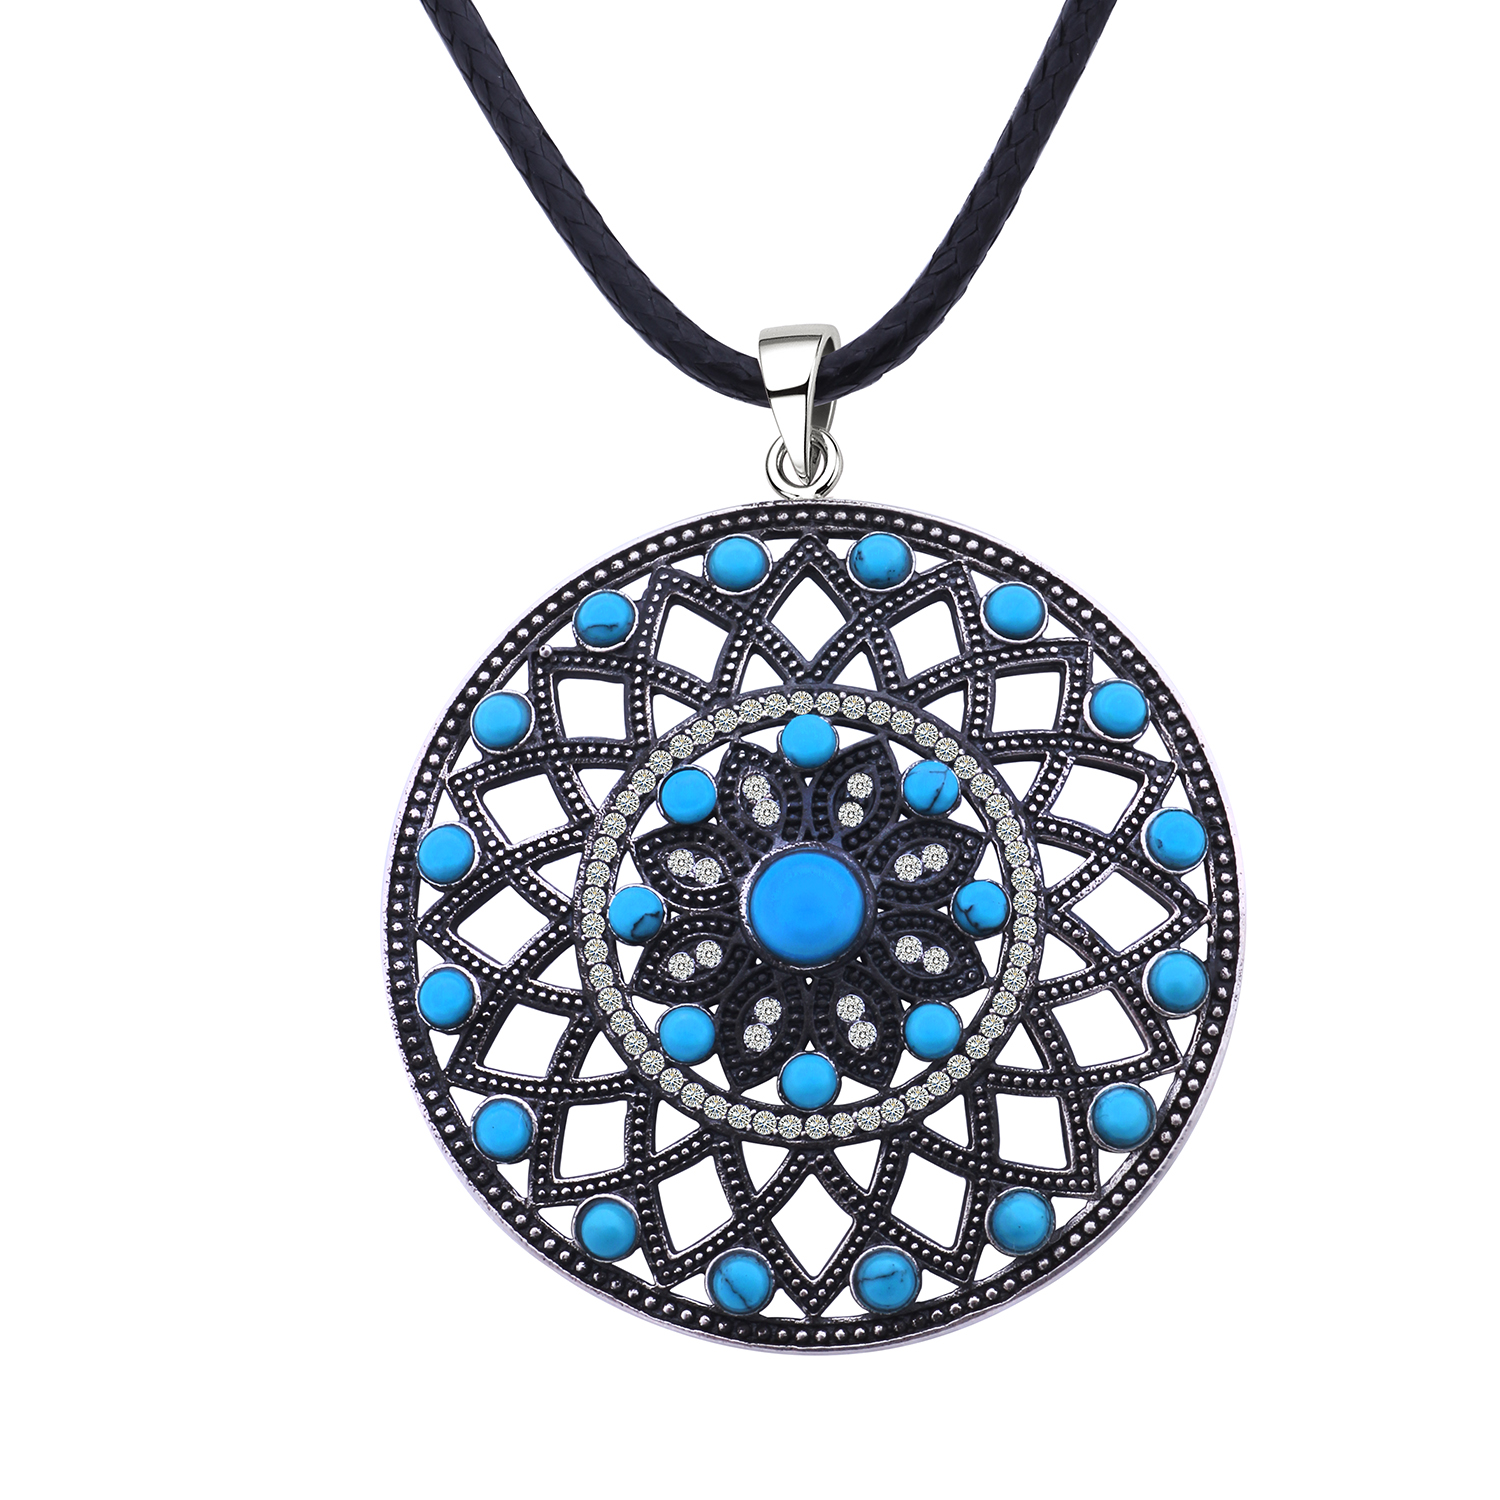 MetJakt Vintage Big Pendant Sweater Chain with Natural Turquoise 925 Sterling Silver Zircon Pendant Necklaces Free Leather Chain vintage faux turquoise moon feather shape pendant sweater chain for women